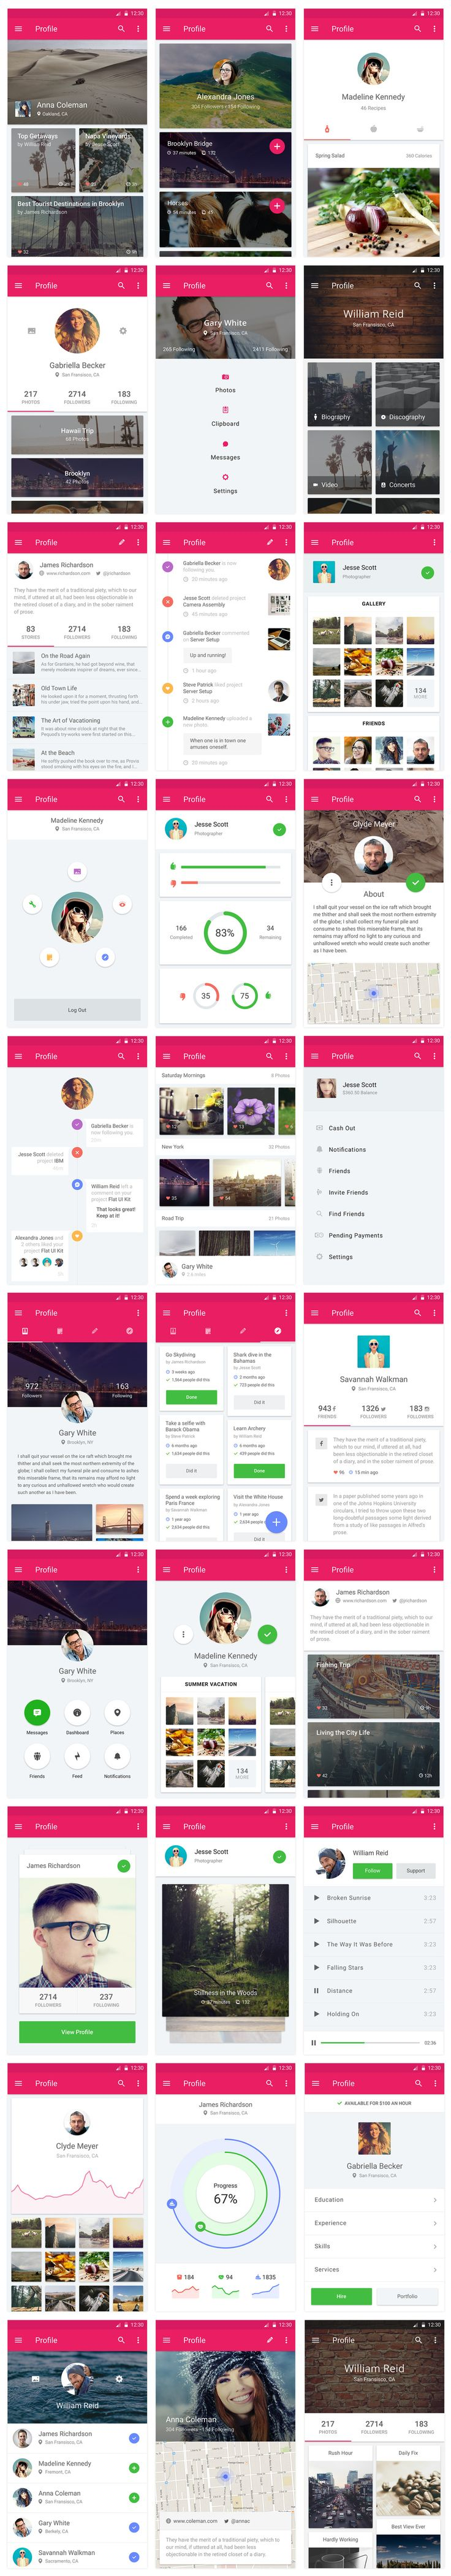 Material Design UI Kit - Profiles #mobile #UI #materialdesign